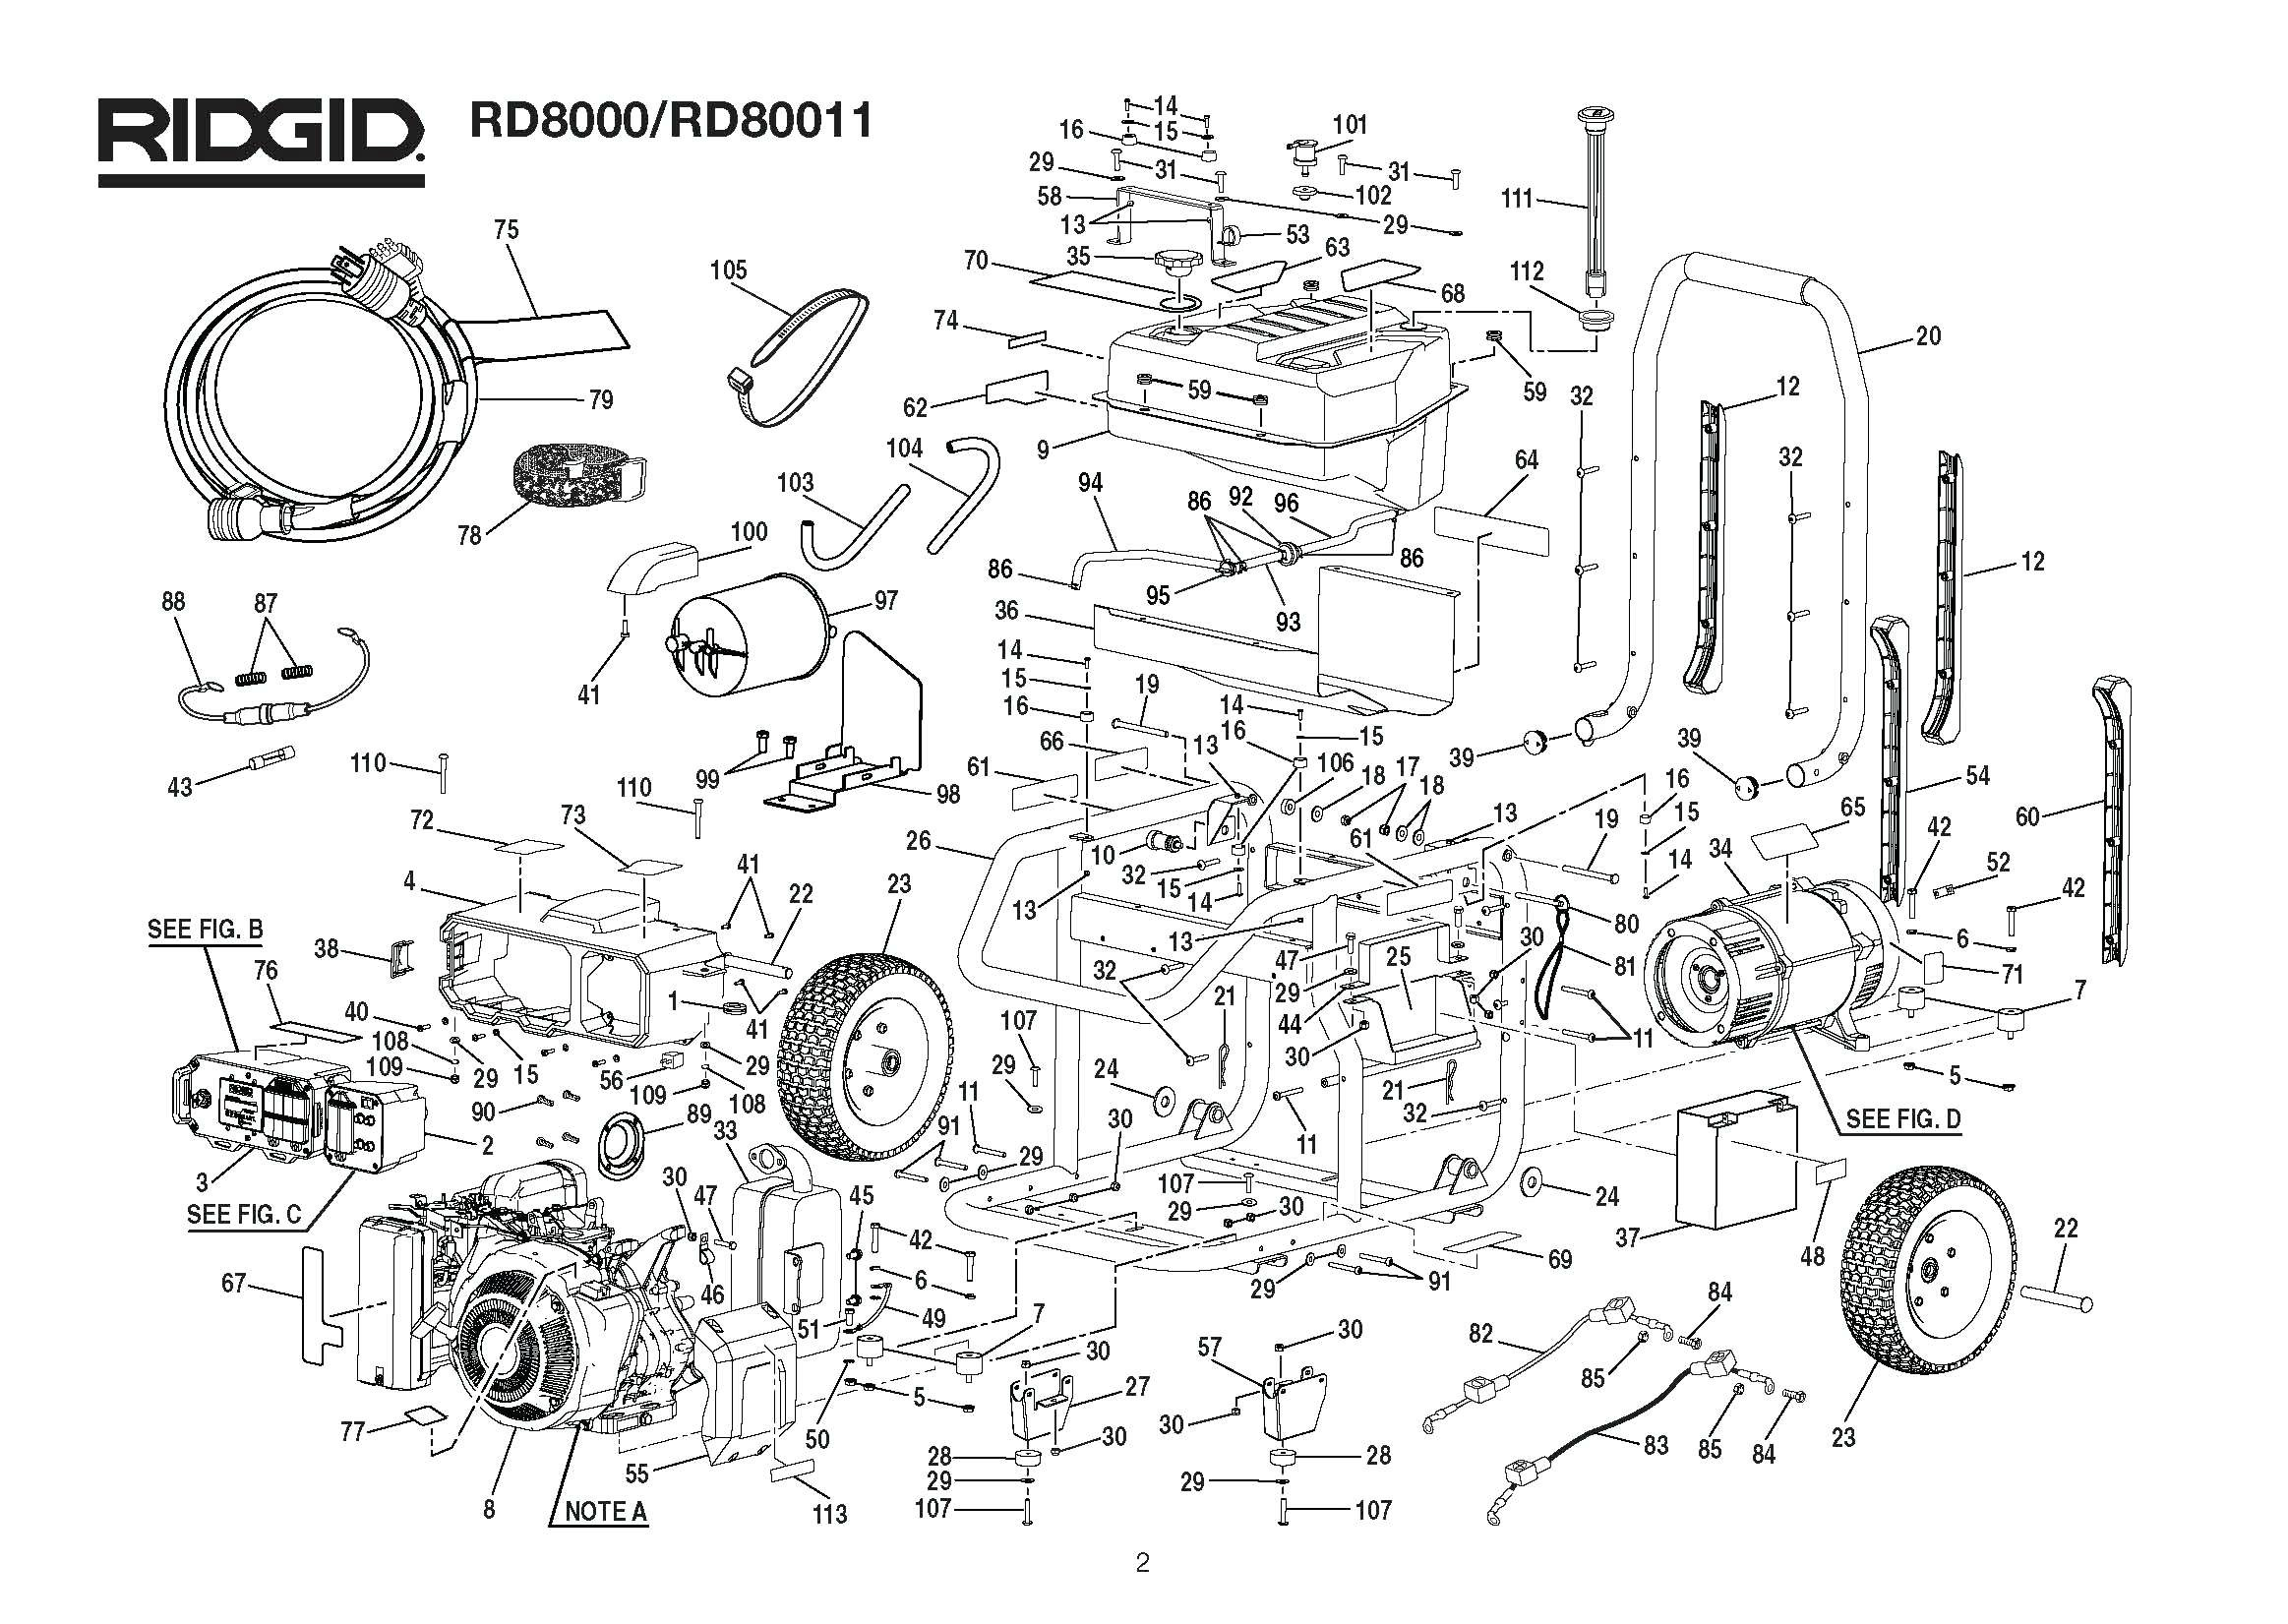 1997 subaru legacy engine diagram subaru engine diagram diagrams rh detoxicrecenze com 2002 Subaru Forester Wiring-Diagram 1987 Subaru GL Engine